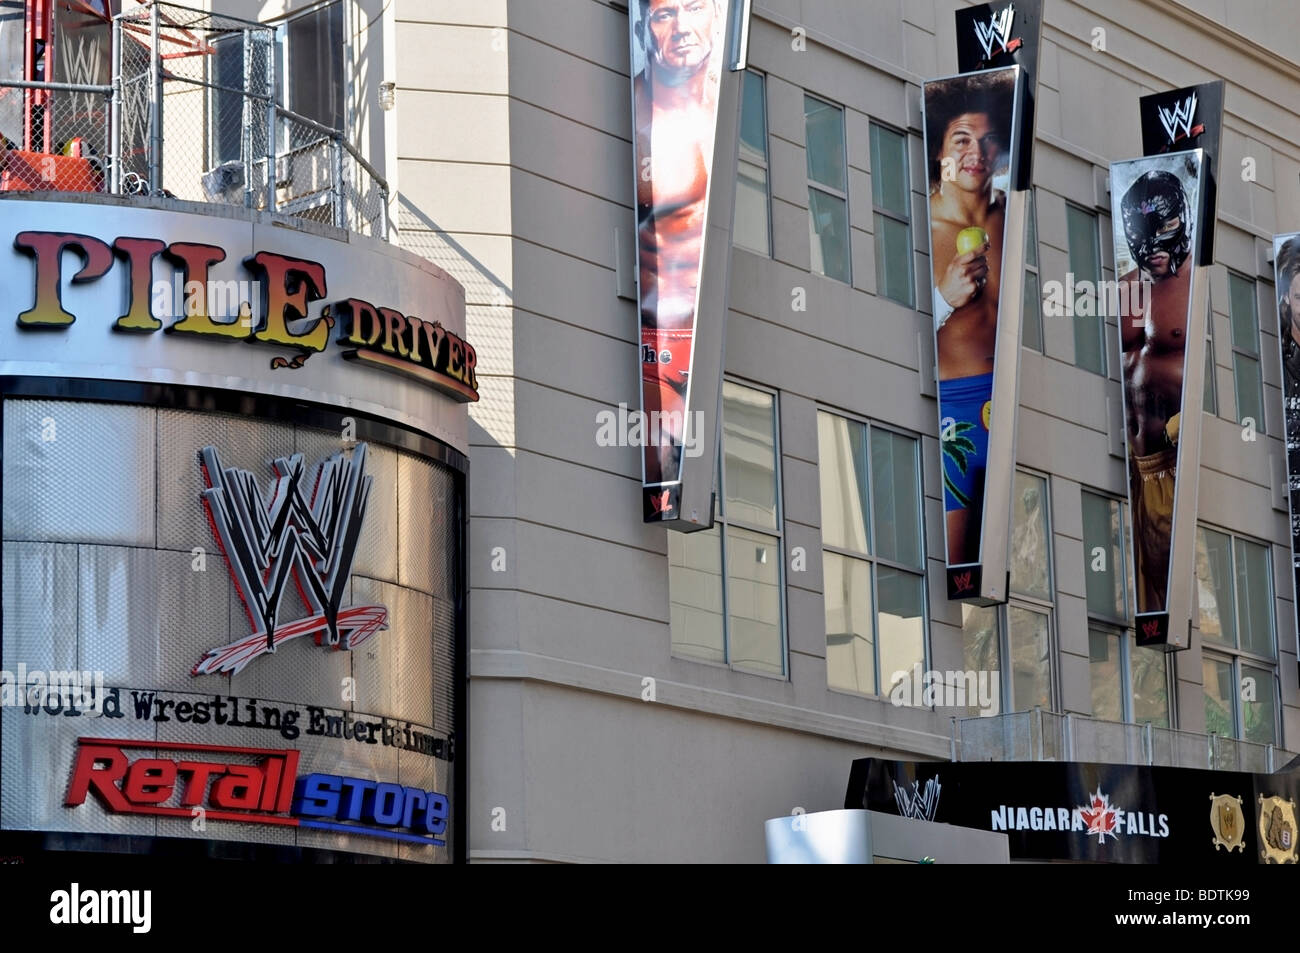 World Wrestling Entertainement (WWE) - attractions de Clifton Hill, Niagara, Canada Photo Stock